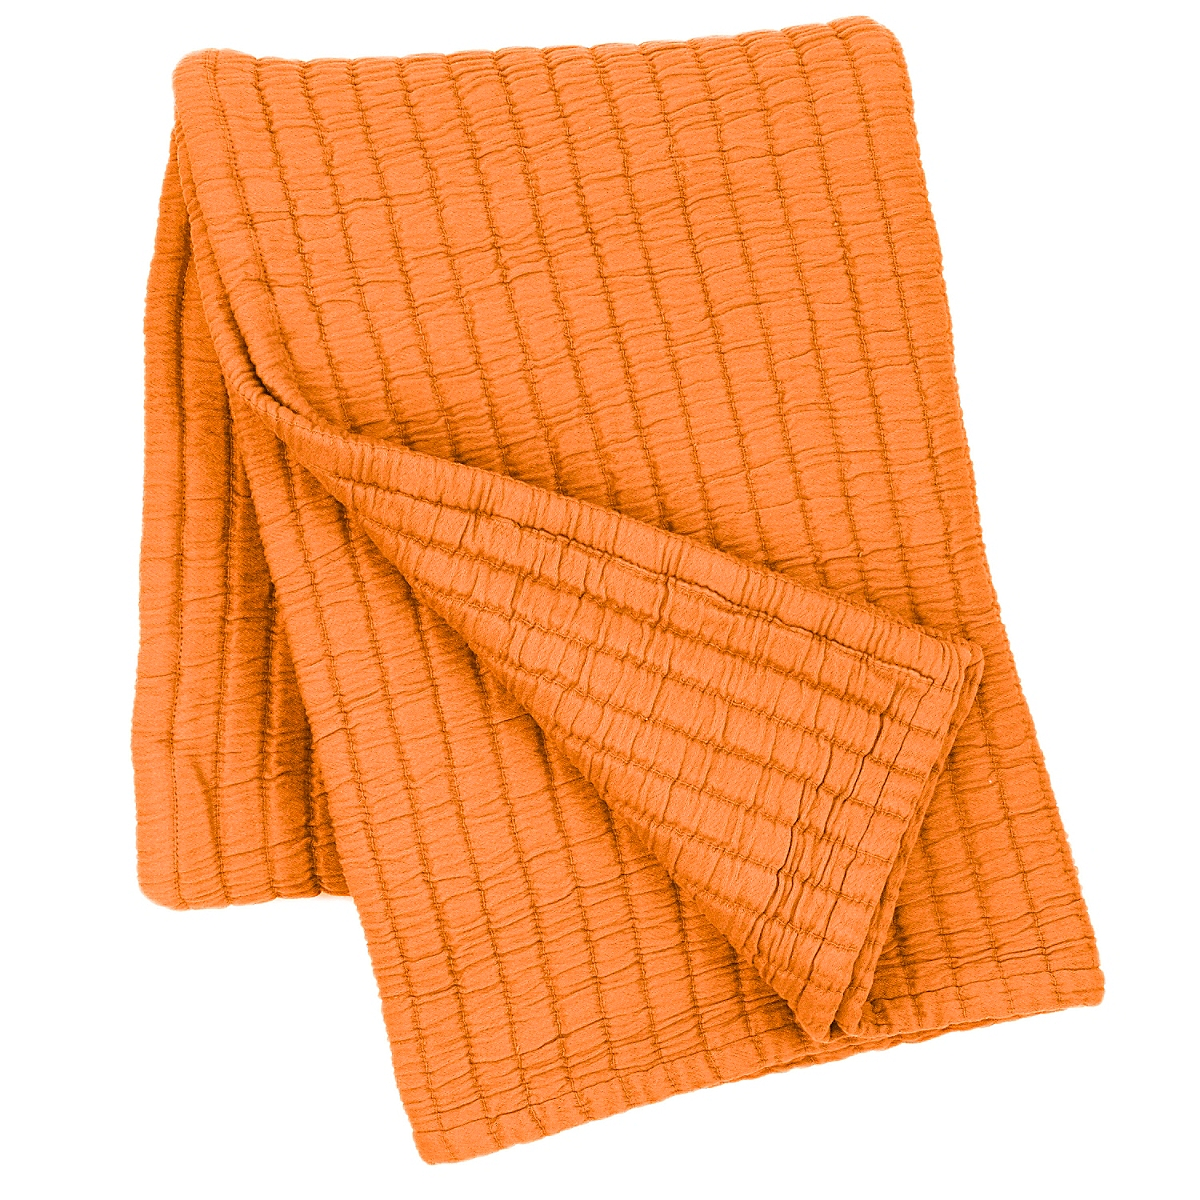 "Boyfriend Orange Matelasse Throw 50"" x 70"""